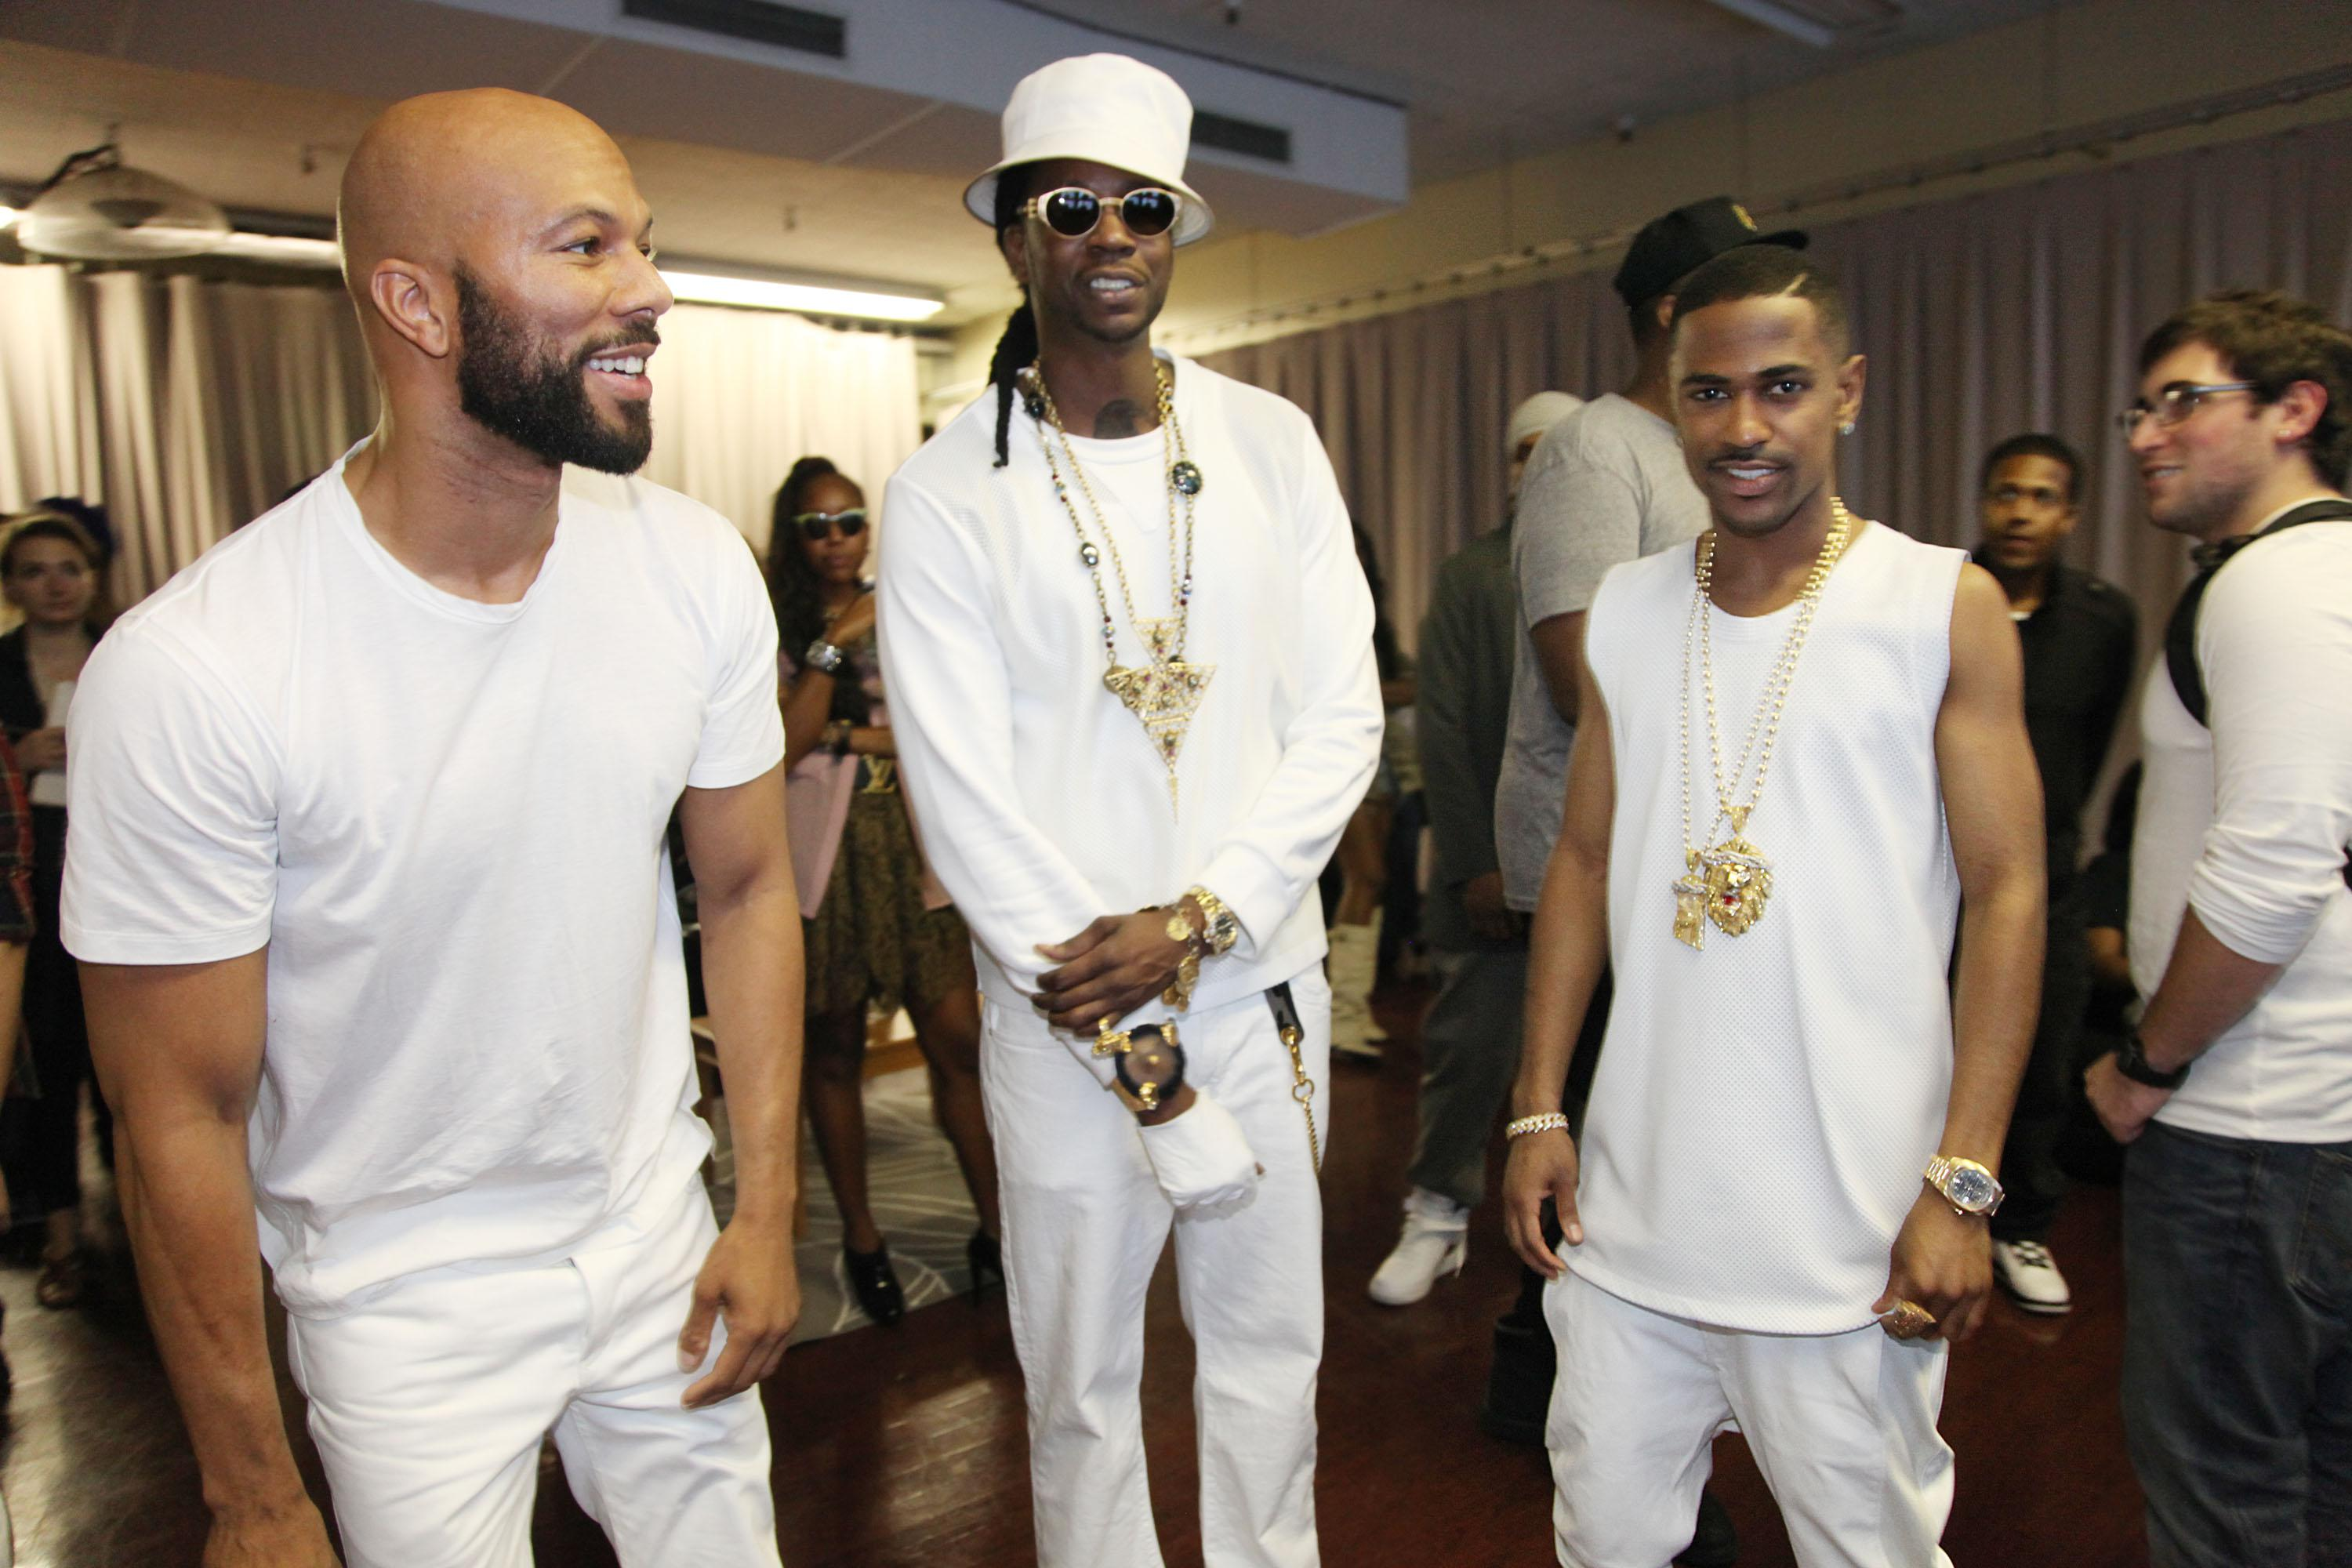 G.O.O.D. Music's 'Cruel Summer' Album Release Celebration On BET's '106 & Park'